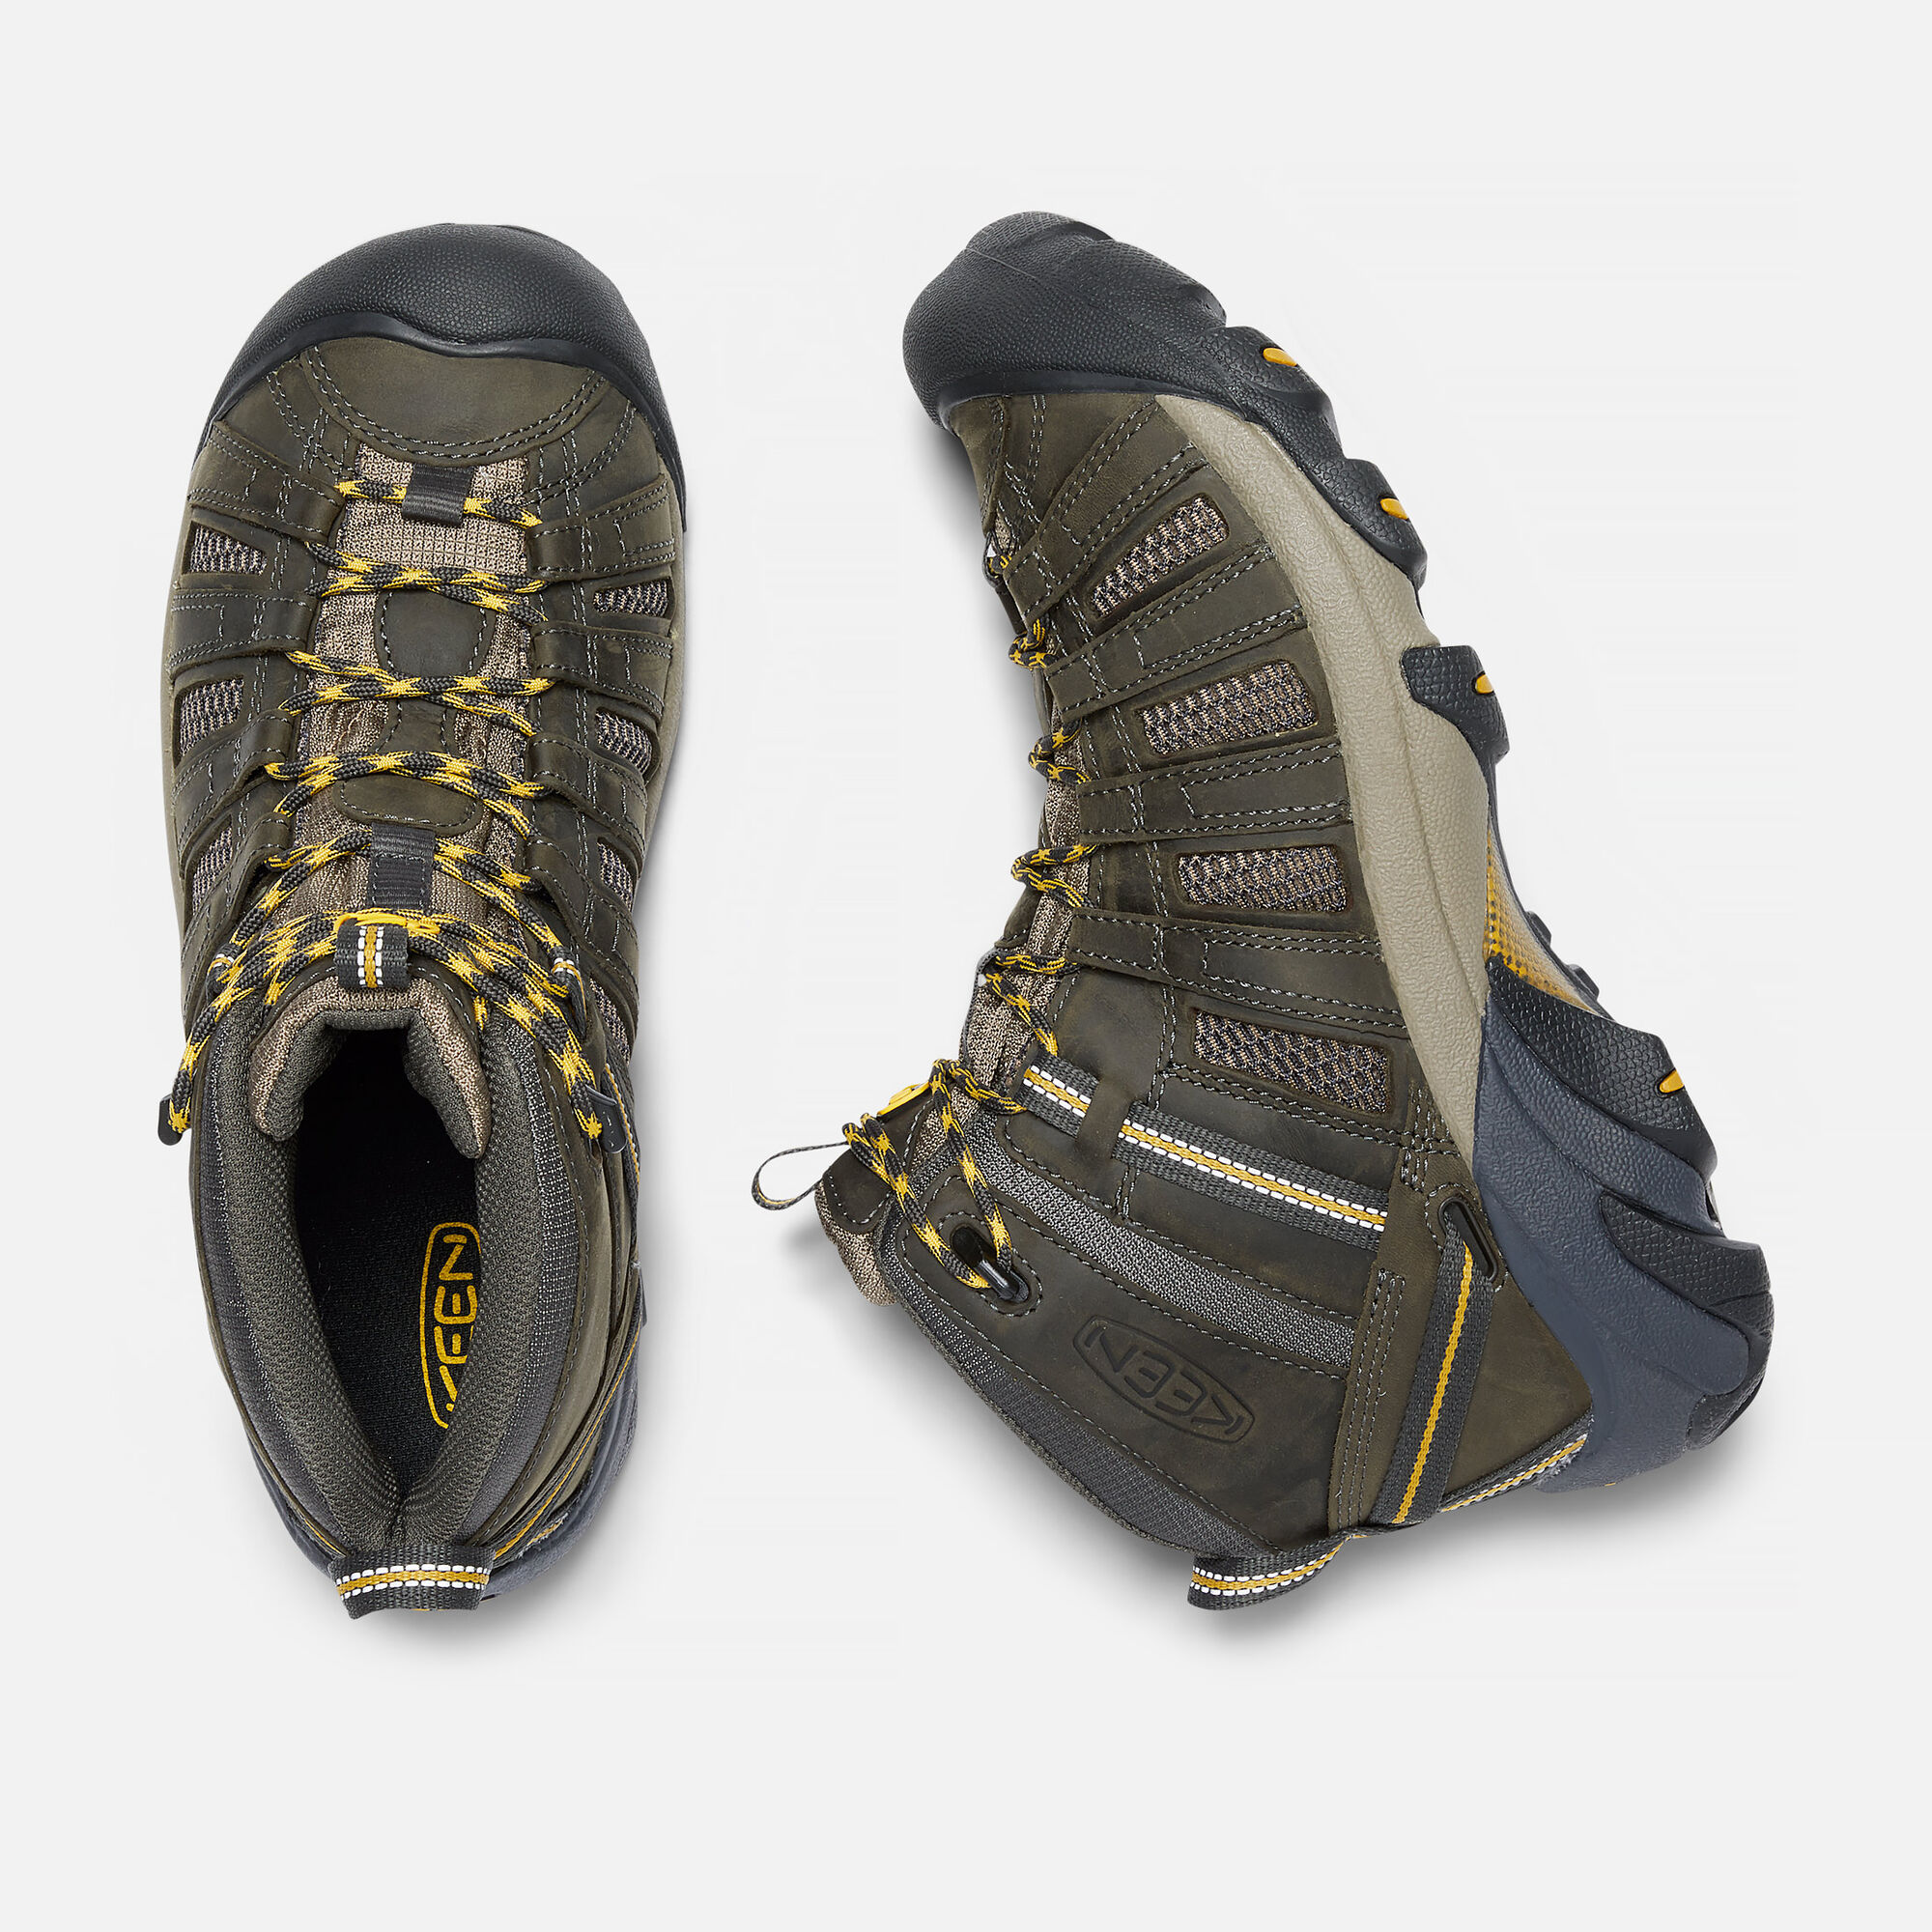 9150dd1a6fb Men's Voyageur Mid - Vented Hiking Boots | KEEN Footwear